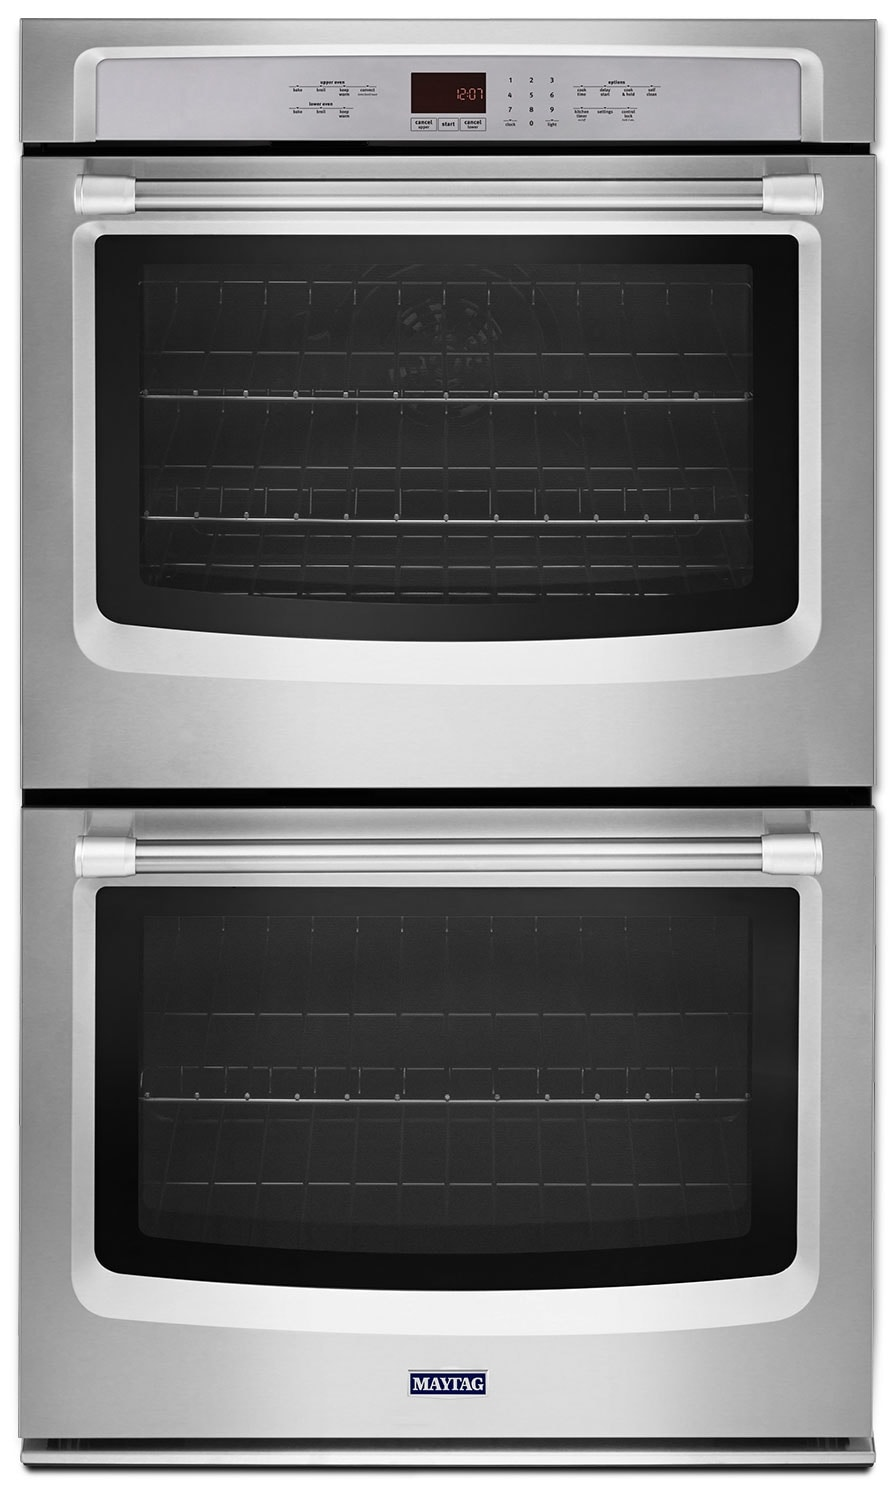 Maytag Stainless Steel Double Convection Wall Oven (10 Cu. Ft.) - MEW9630DS